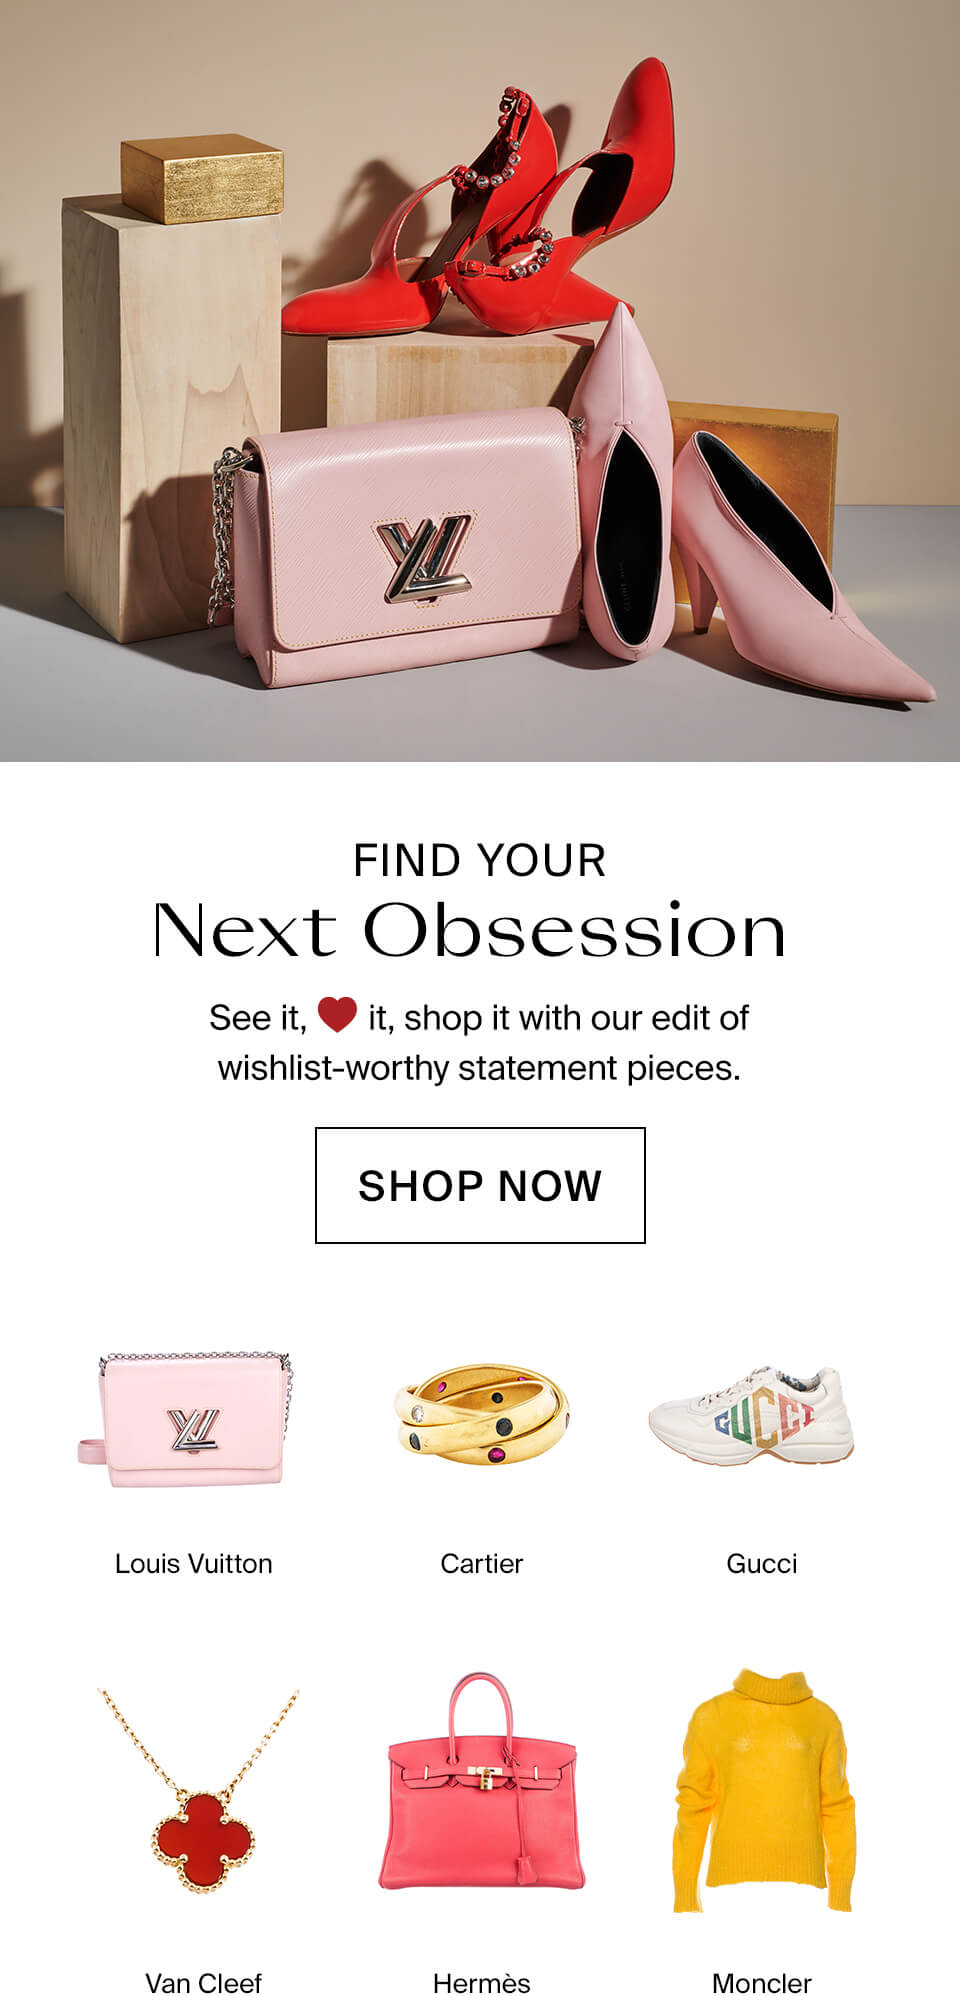 e1eb5e0b320 Find Your Next Obsession Shop Now